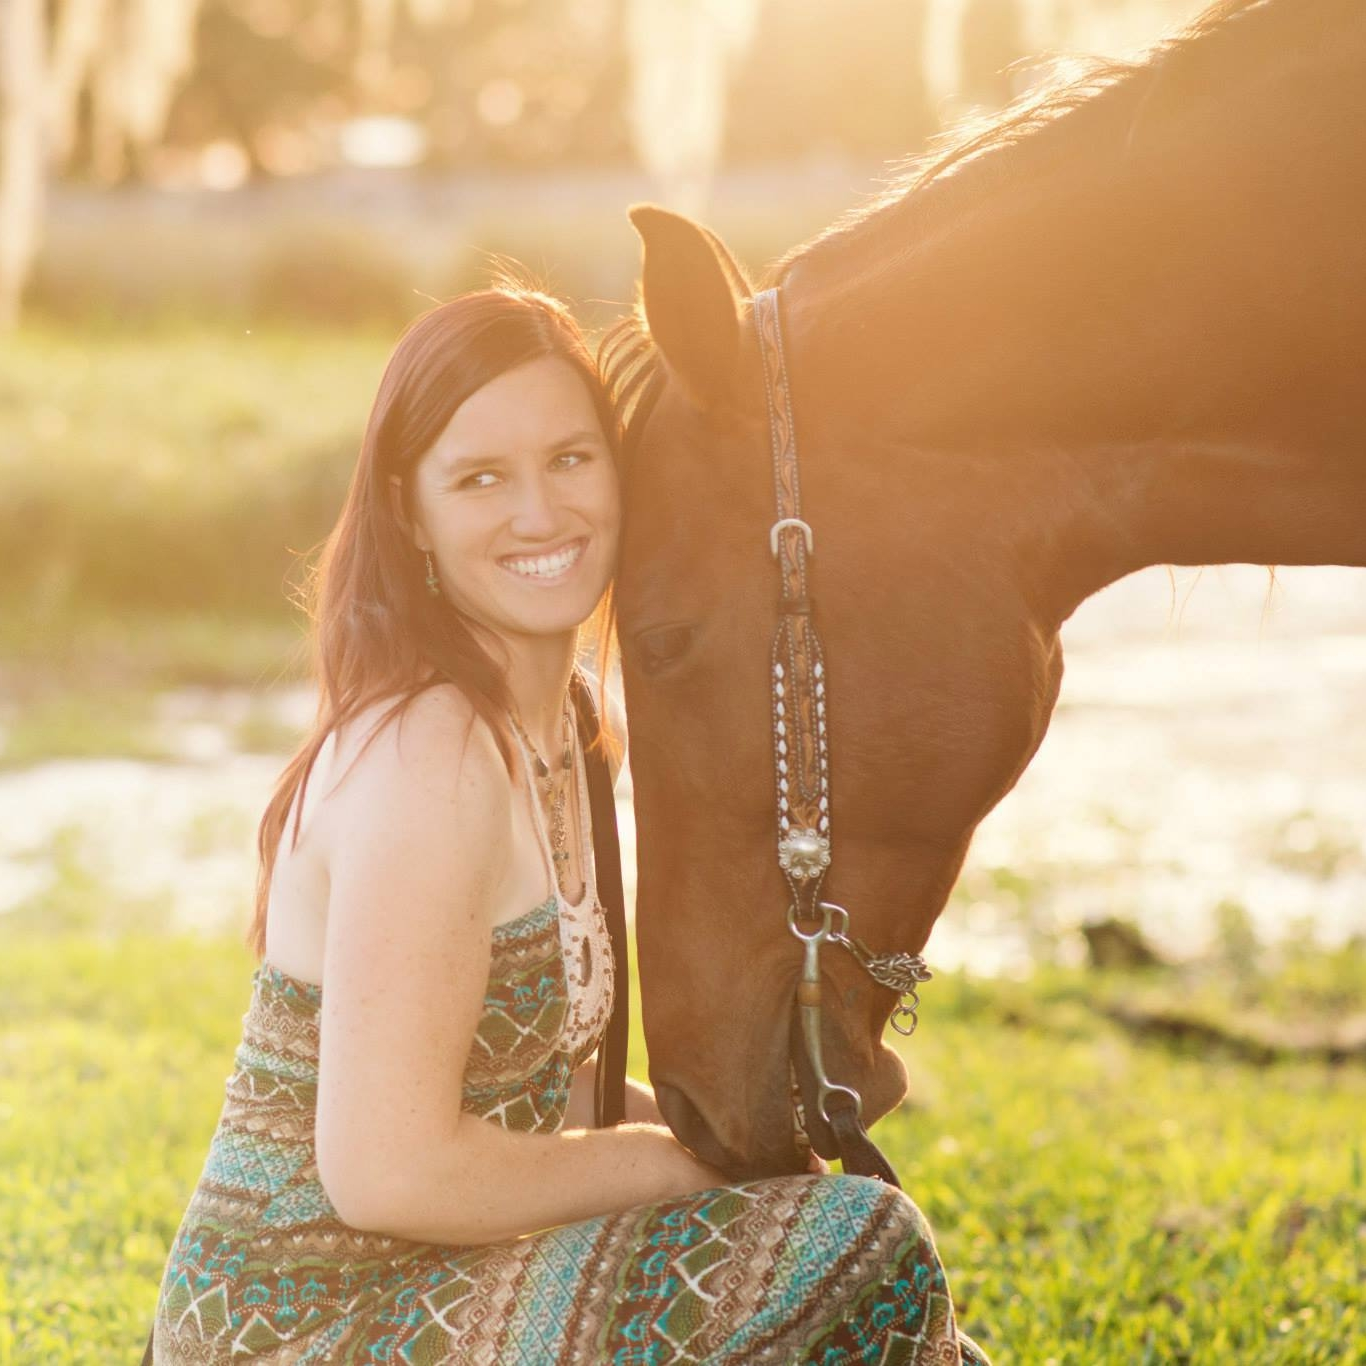 Lisa McCoy  Genre | Equestrian, Portraits, Cars/Yachts  | Based in Tampa, FL